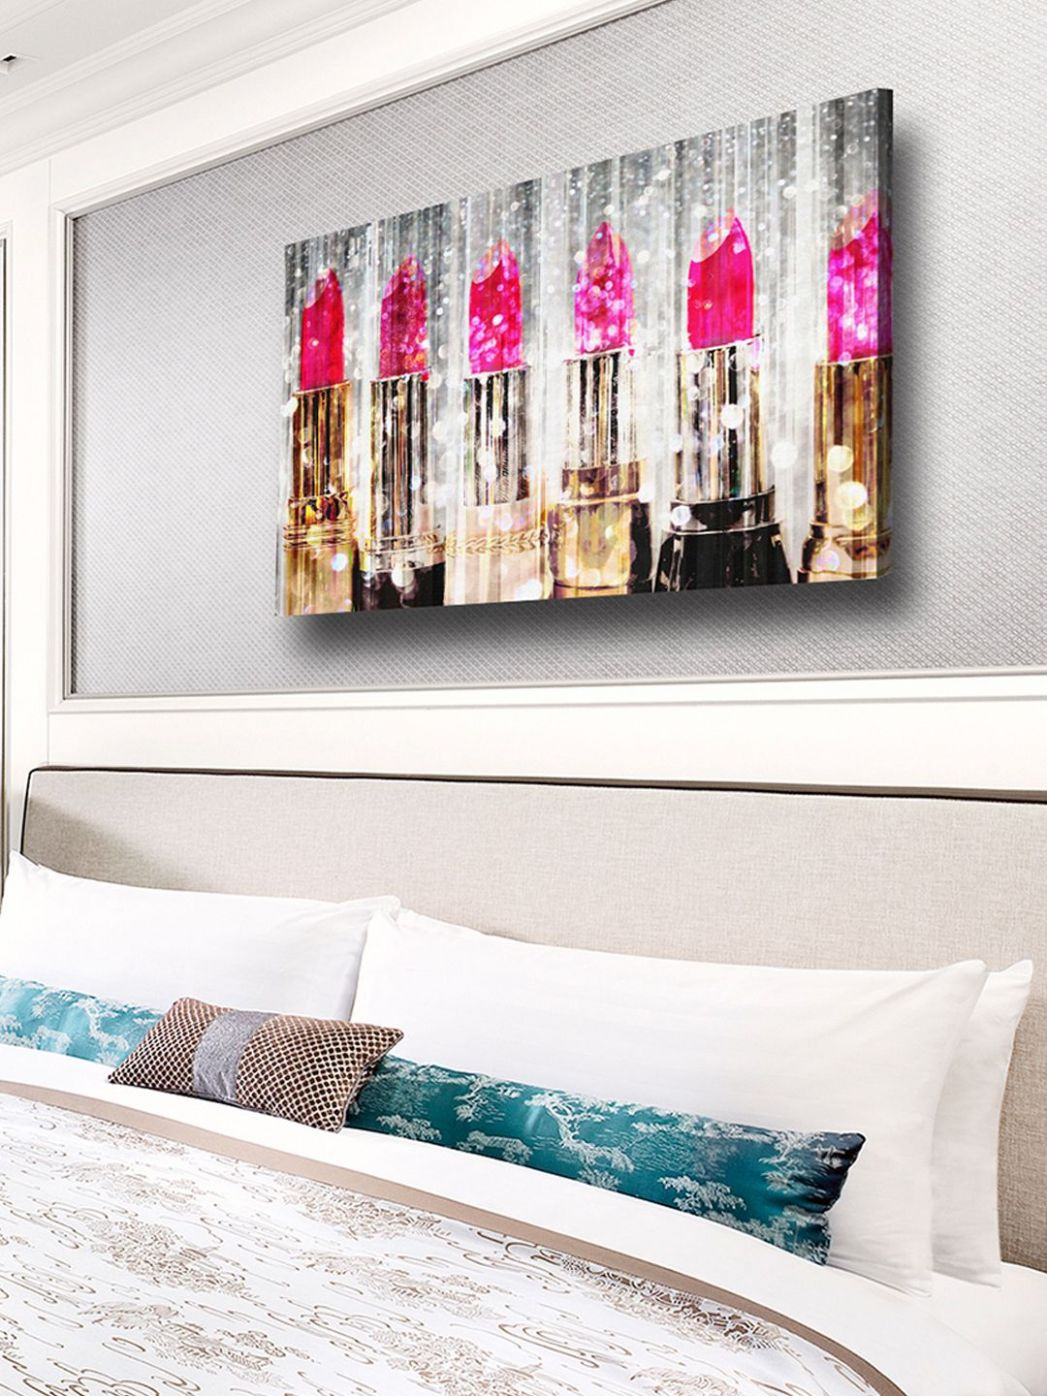 Pin on Decor - makeup room canvas